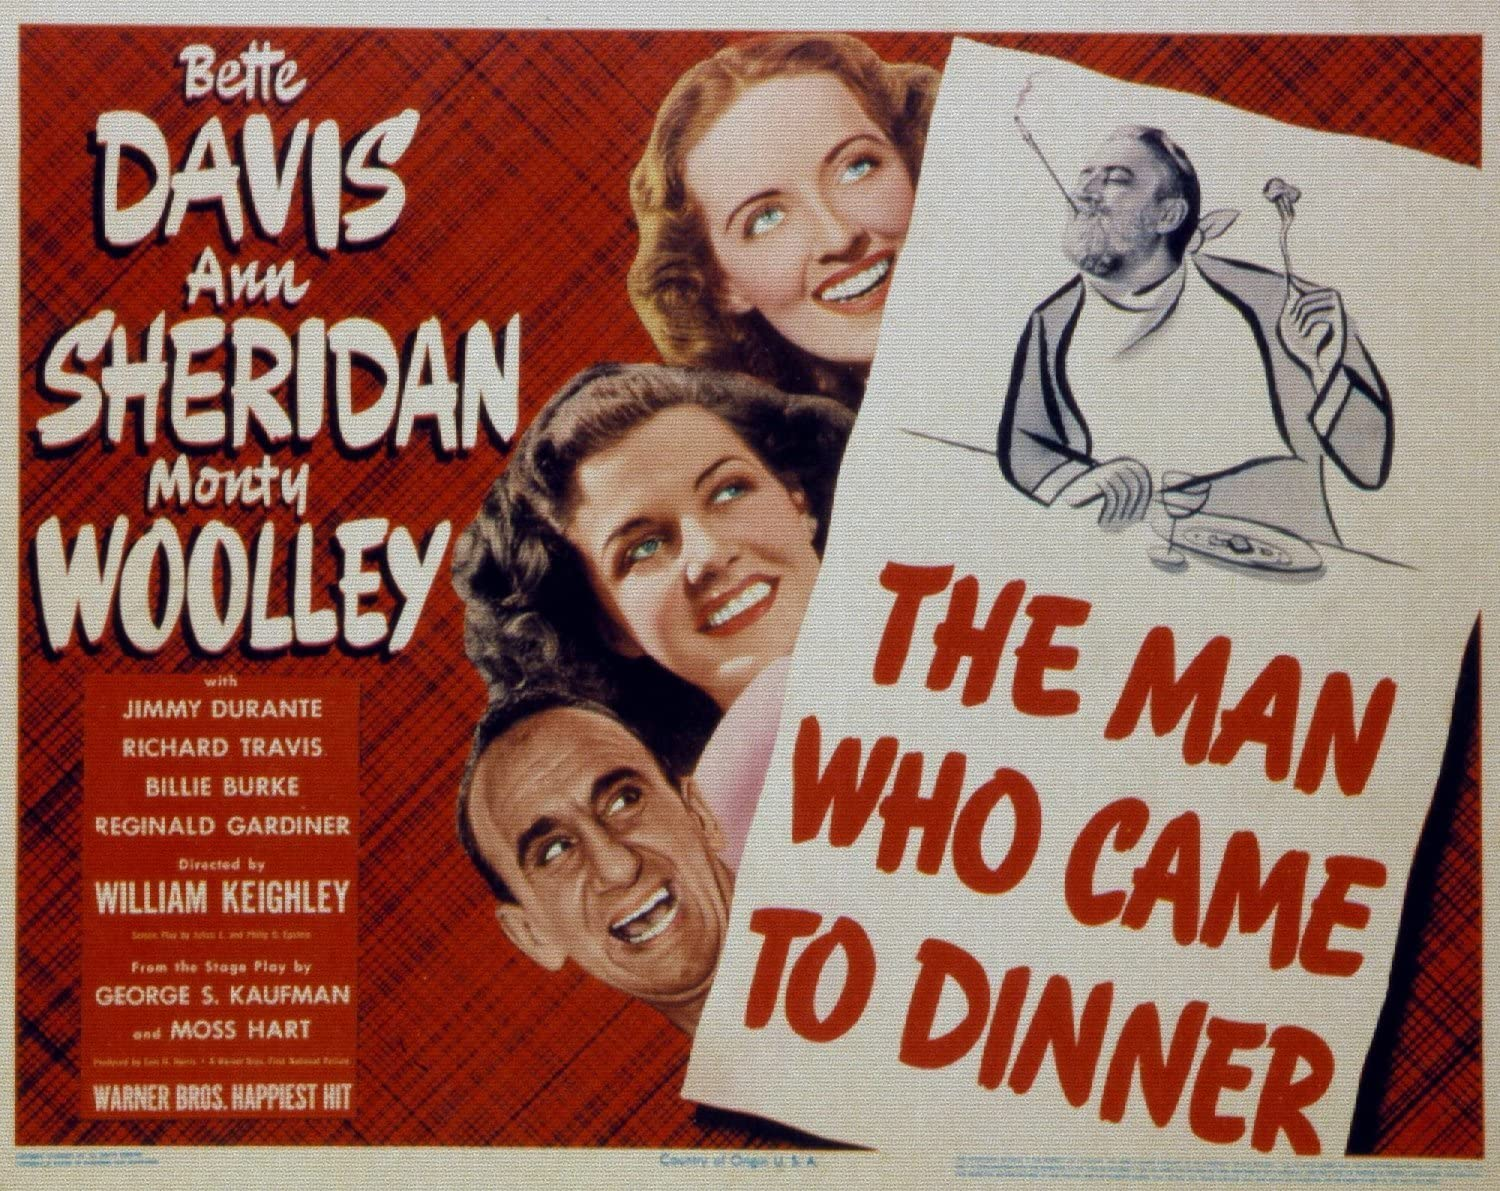 Bette Davis movie poster print 1942 The Man Who Came to Dinner